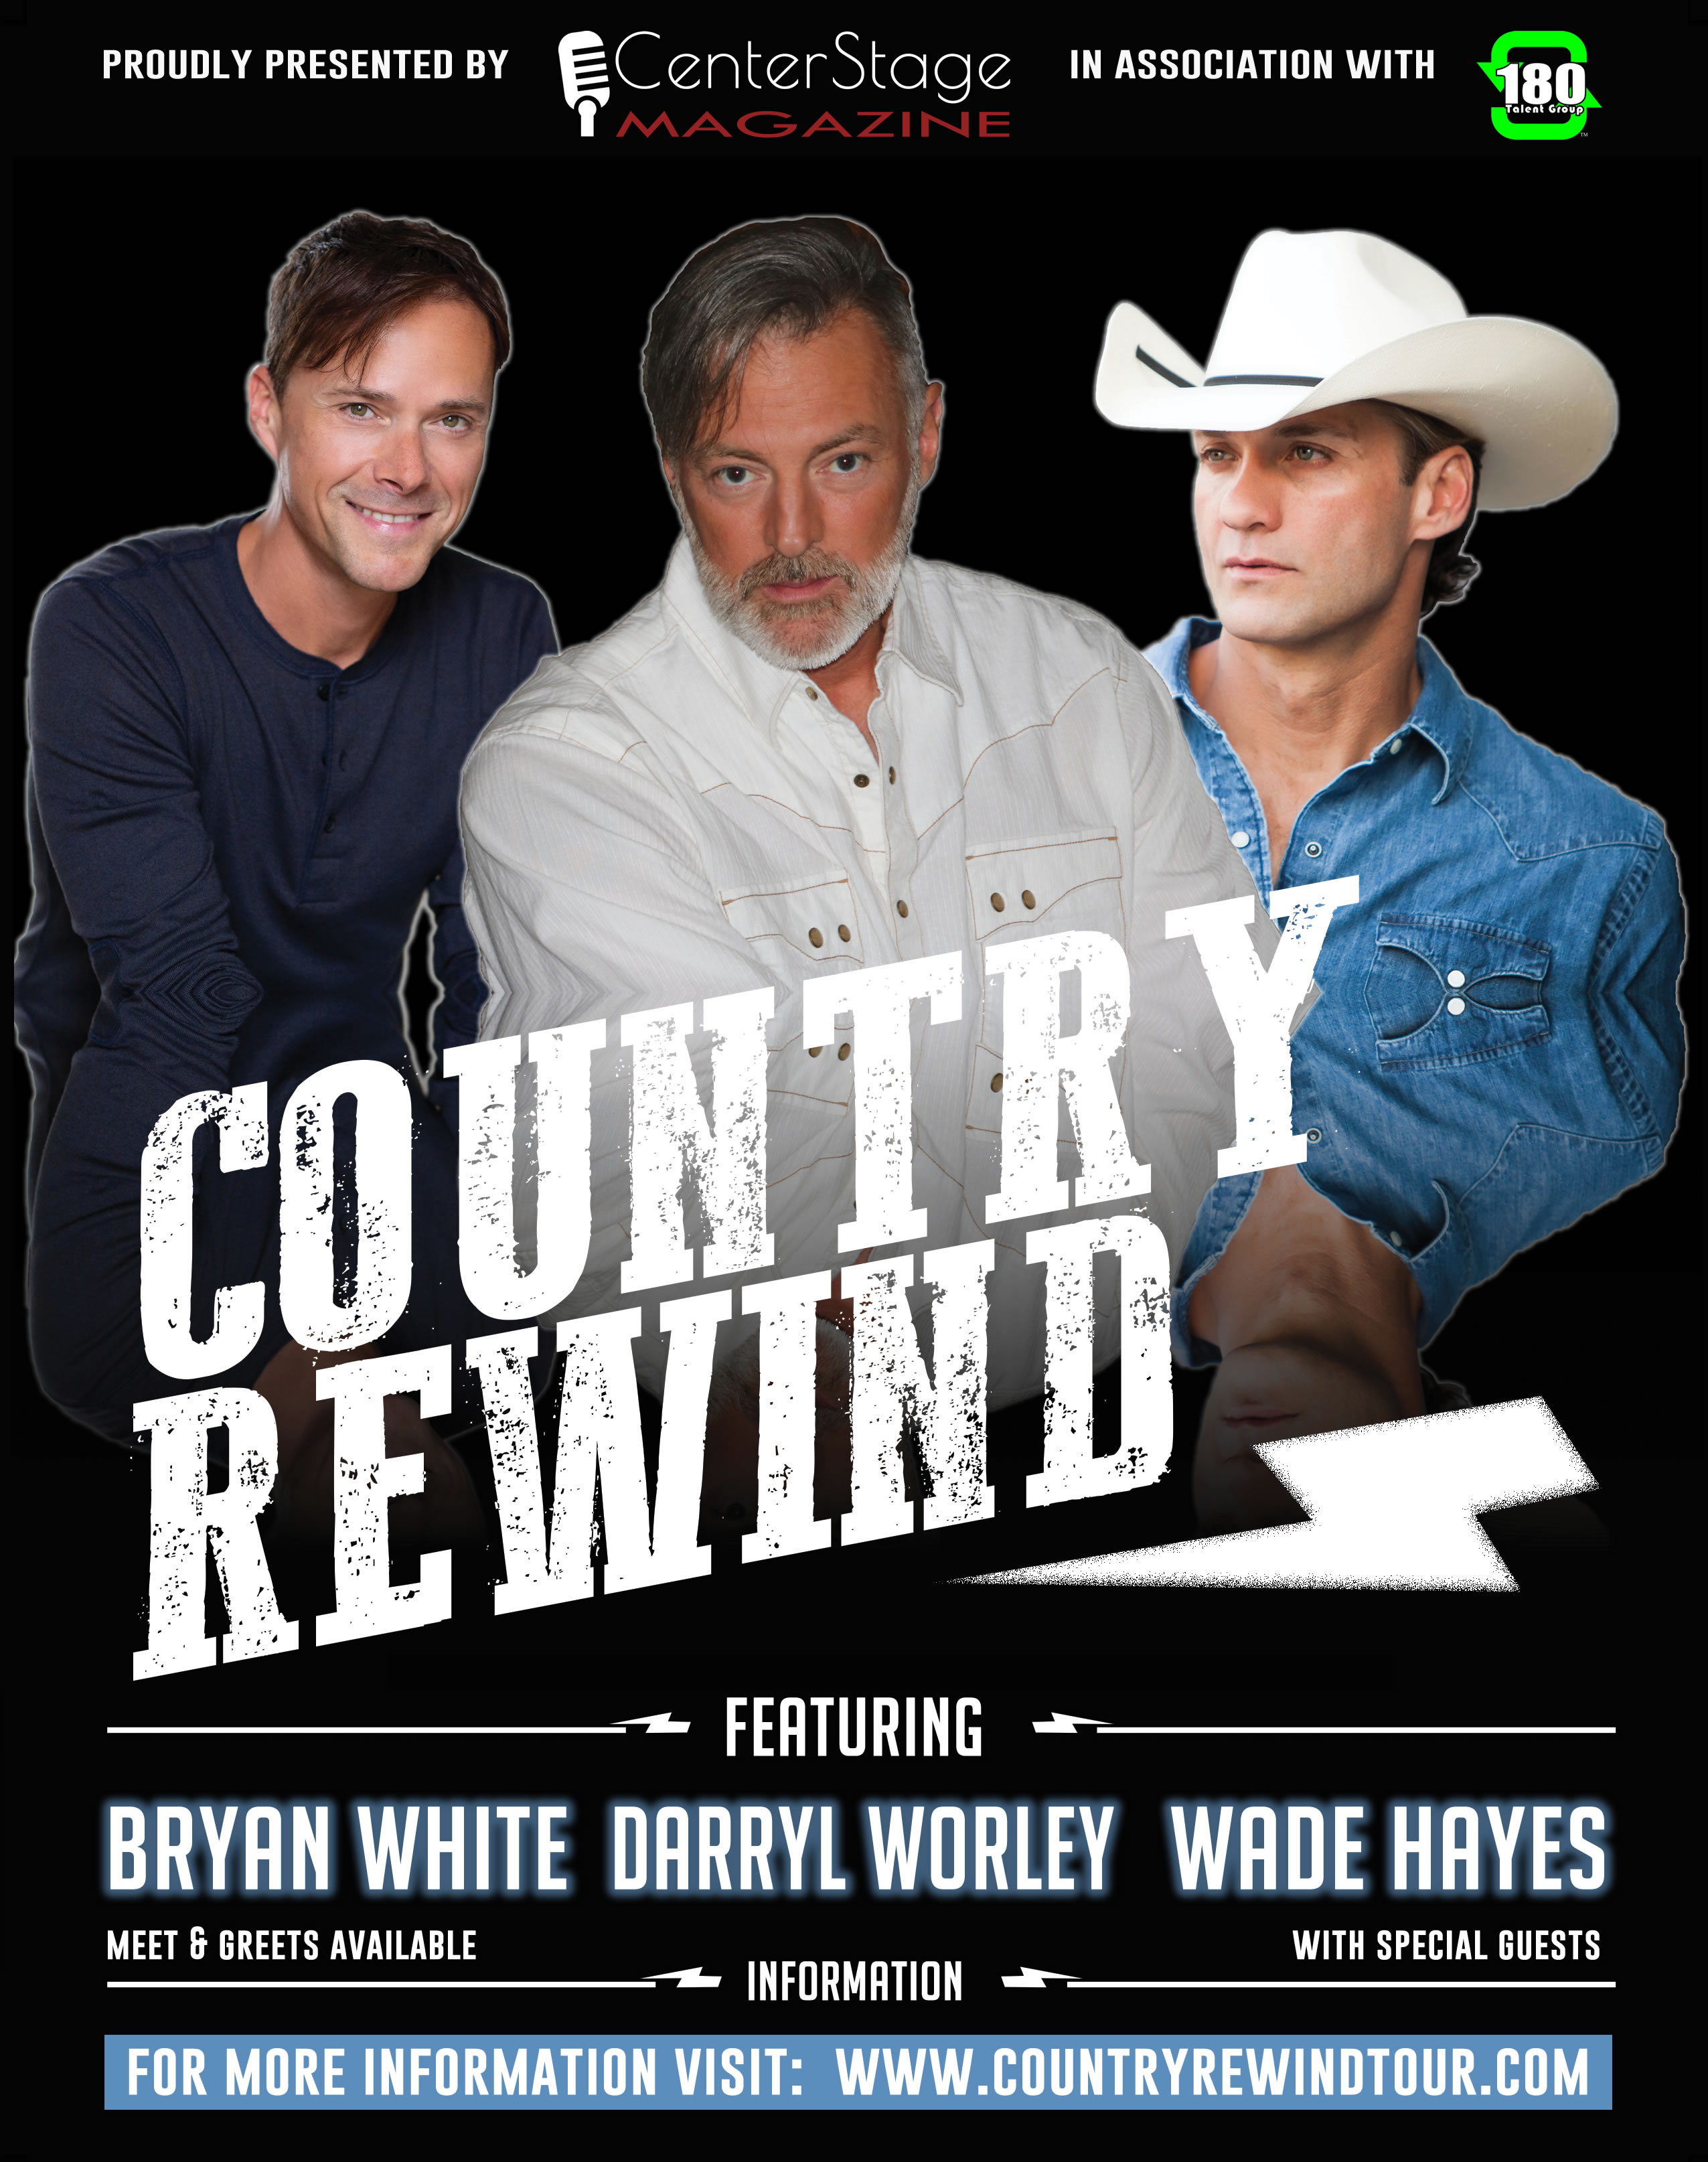 Country Rewind Tour featuring Bryan White, Darryl Worley, Andy Griggs, & Wade Hayes presented by Center Stage Magazine in association with 180 Talent Group